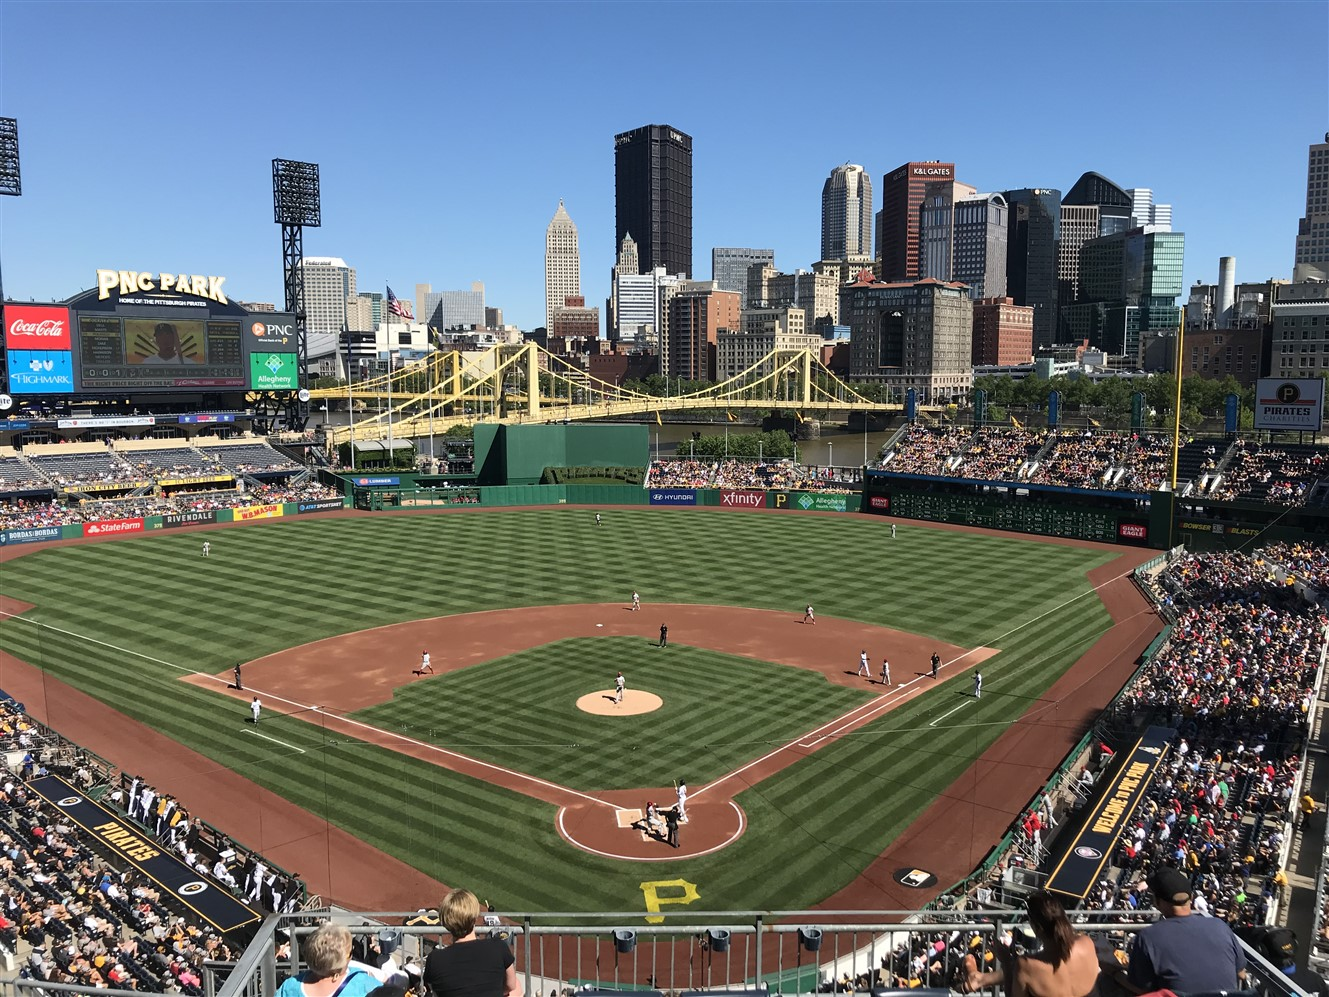 2018 07 07 291 Pittsburgh Pirates Baseball.jpg